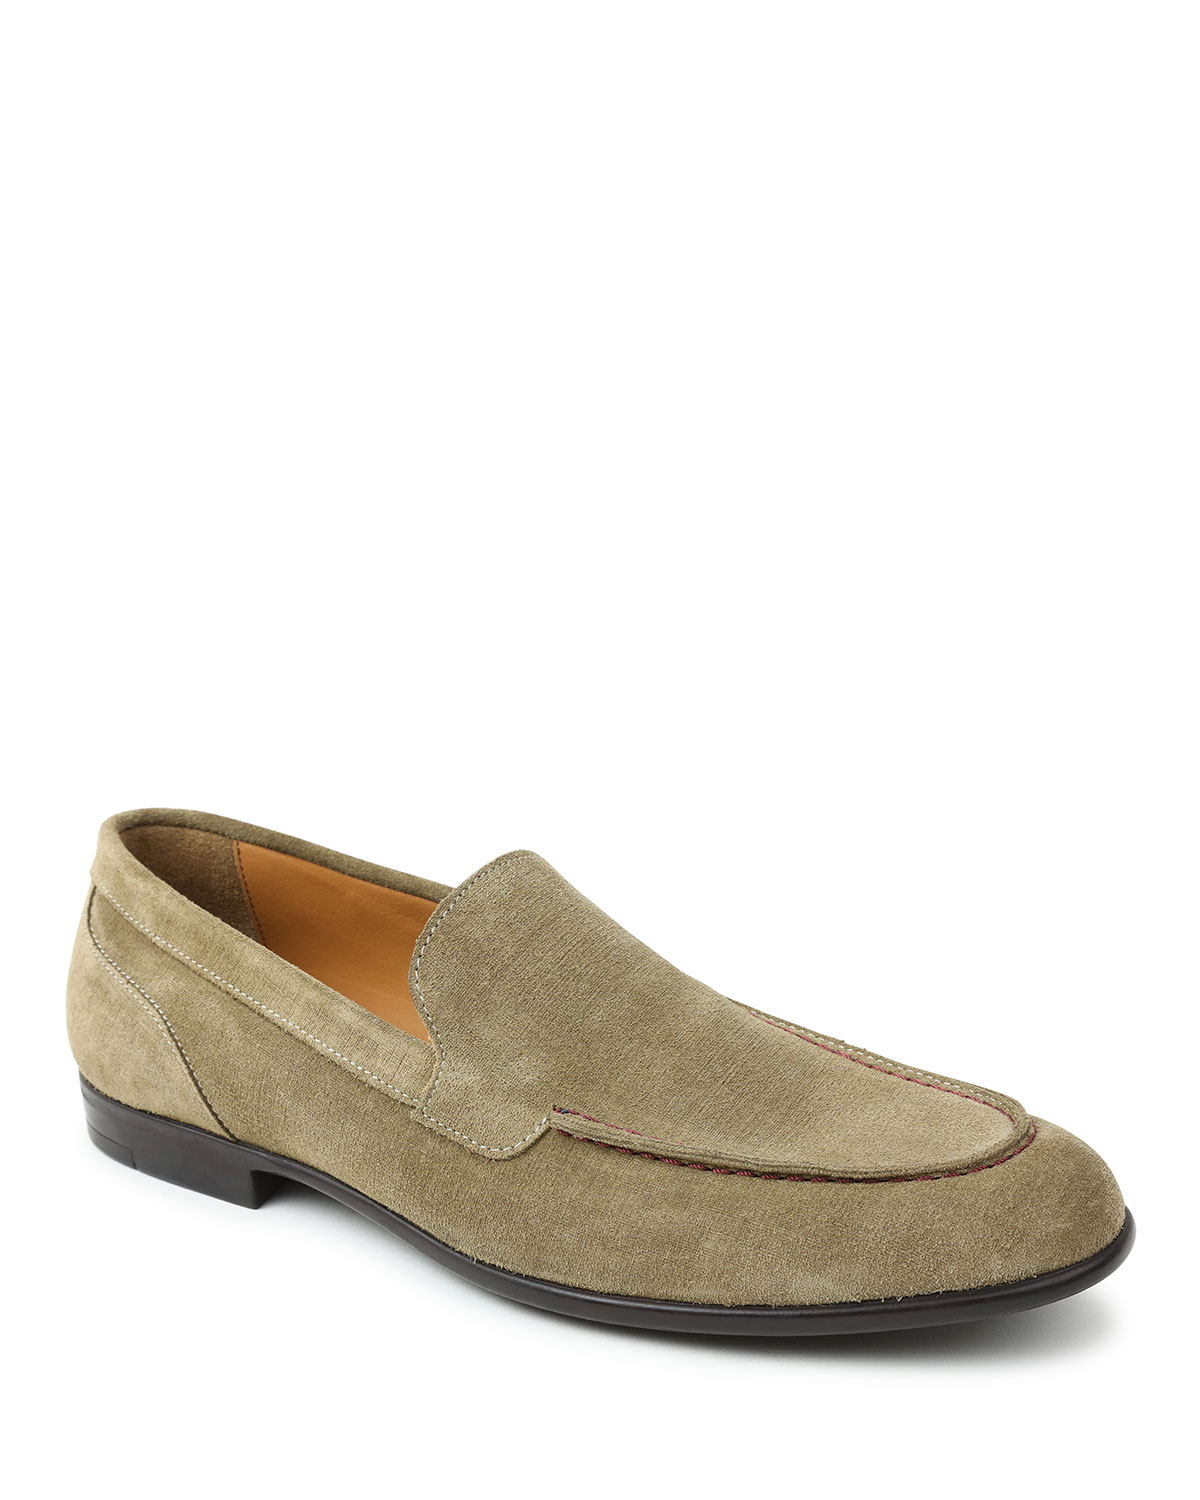 Men's Sino Moc-Toe Suede Loafers